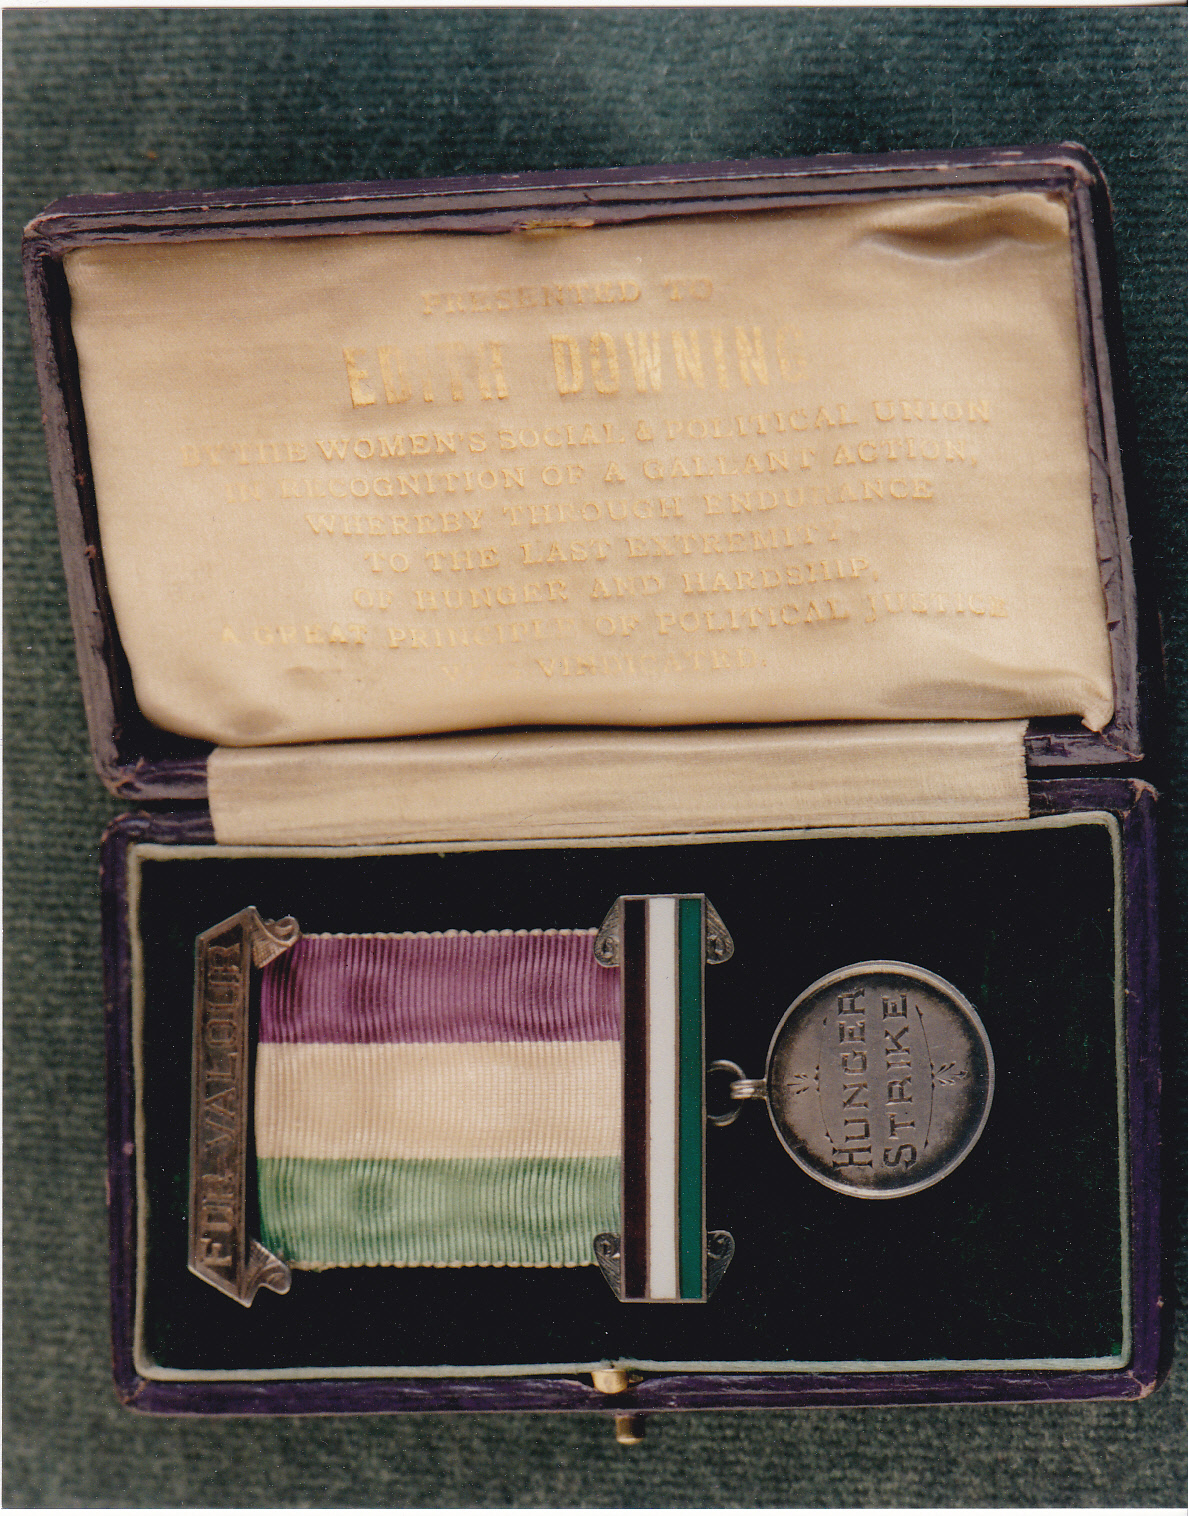 Edith Downing's Hunger Strike Medal